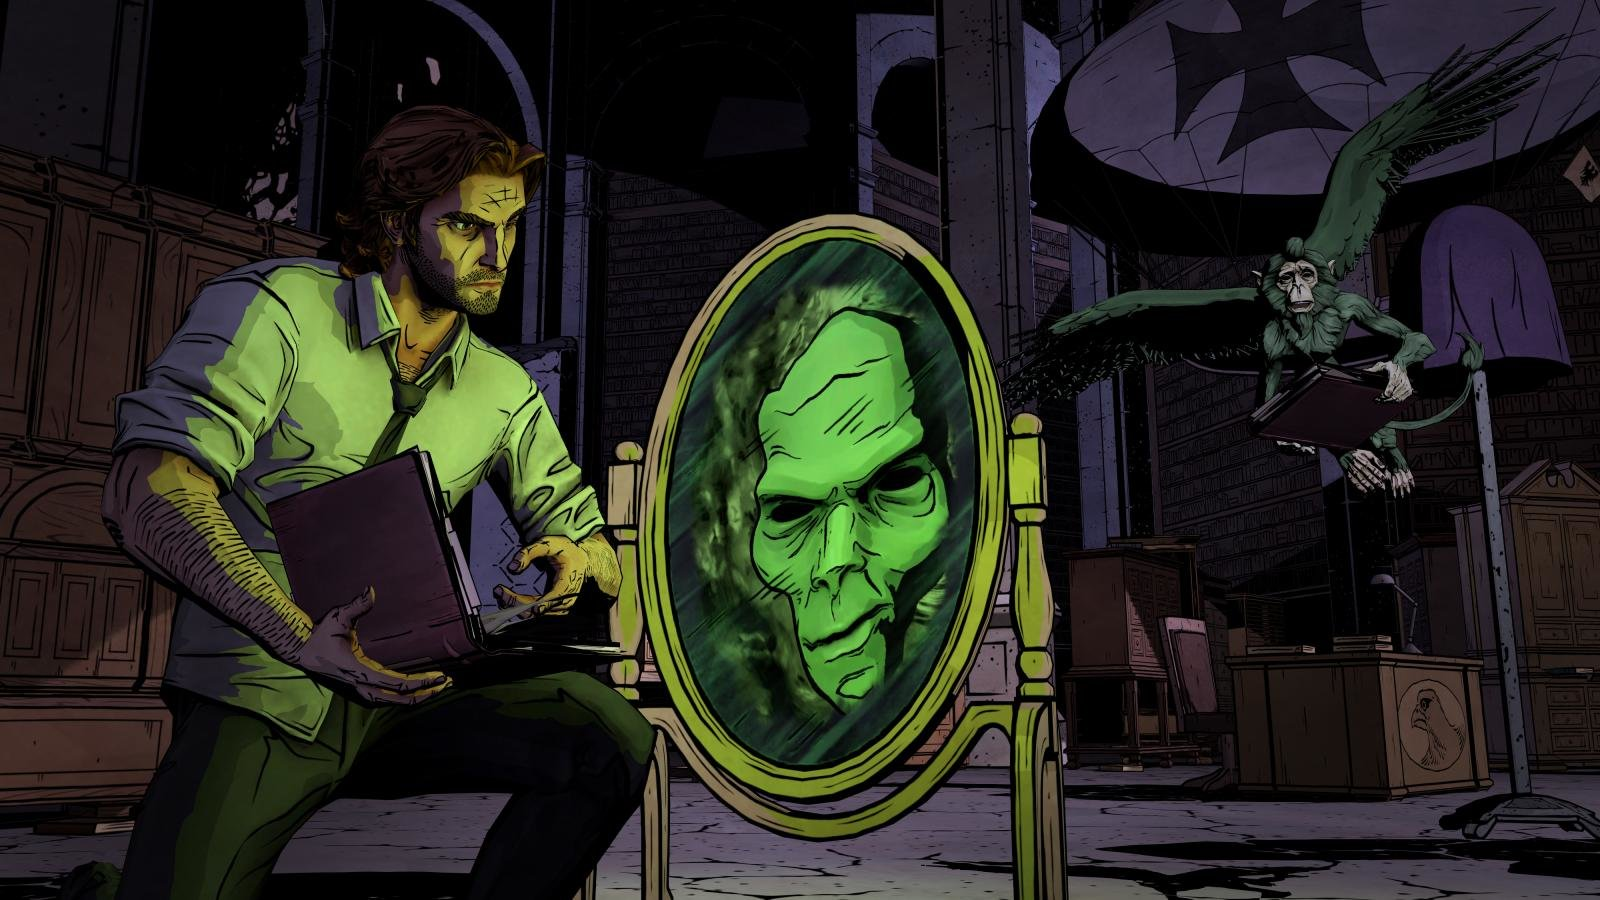 High Resolution The Wolf Among Us Hd 1600x900 Wallpaper ID281691 For Desktop